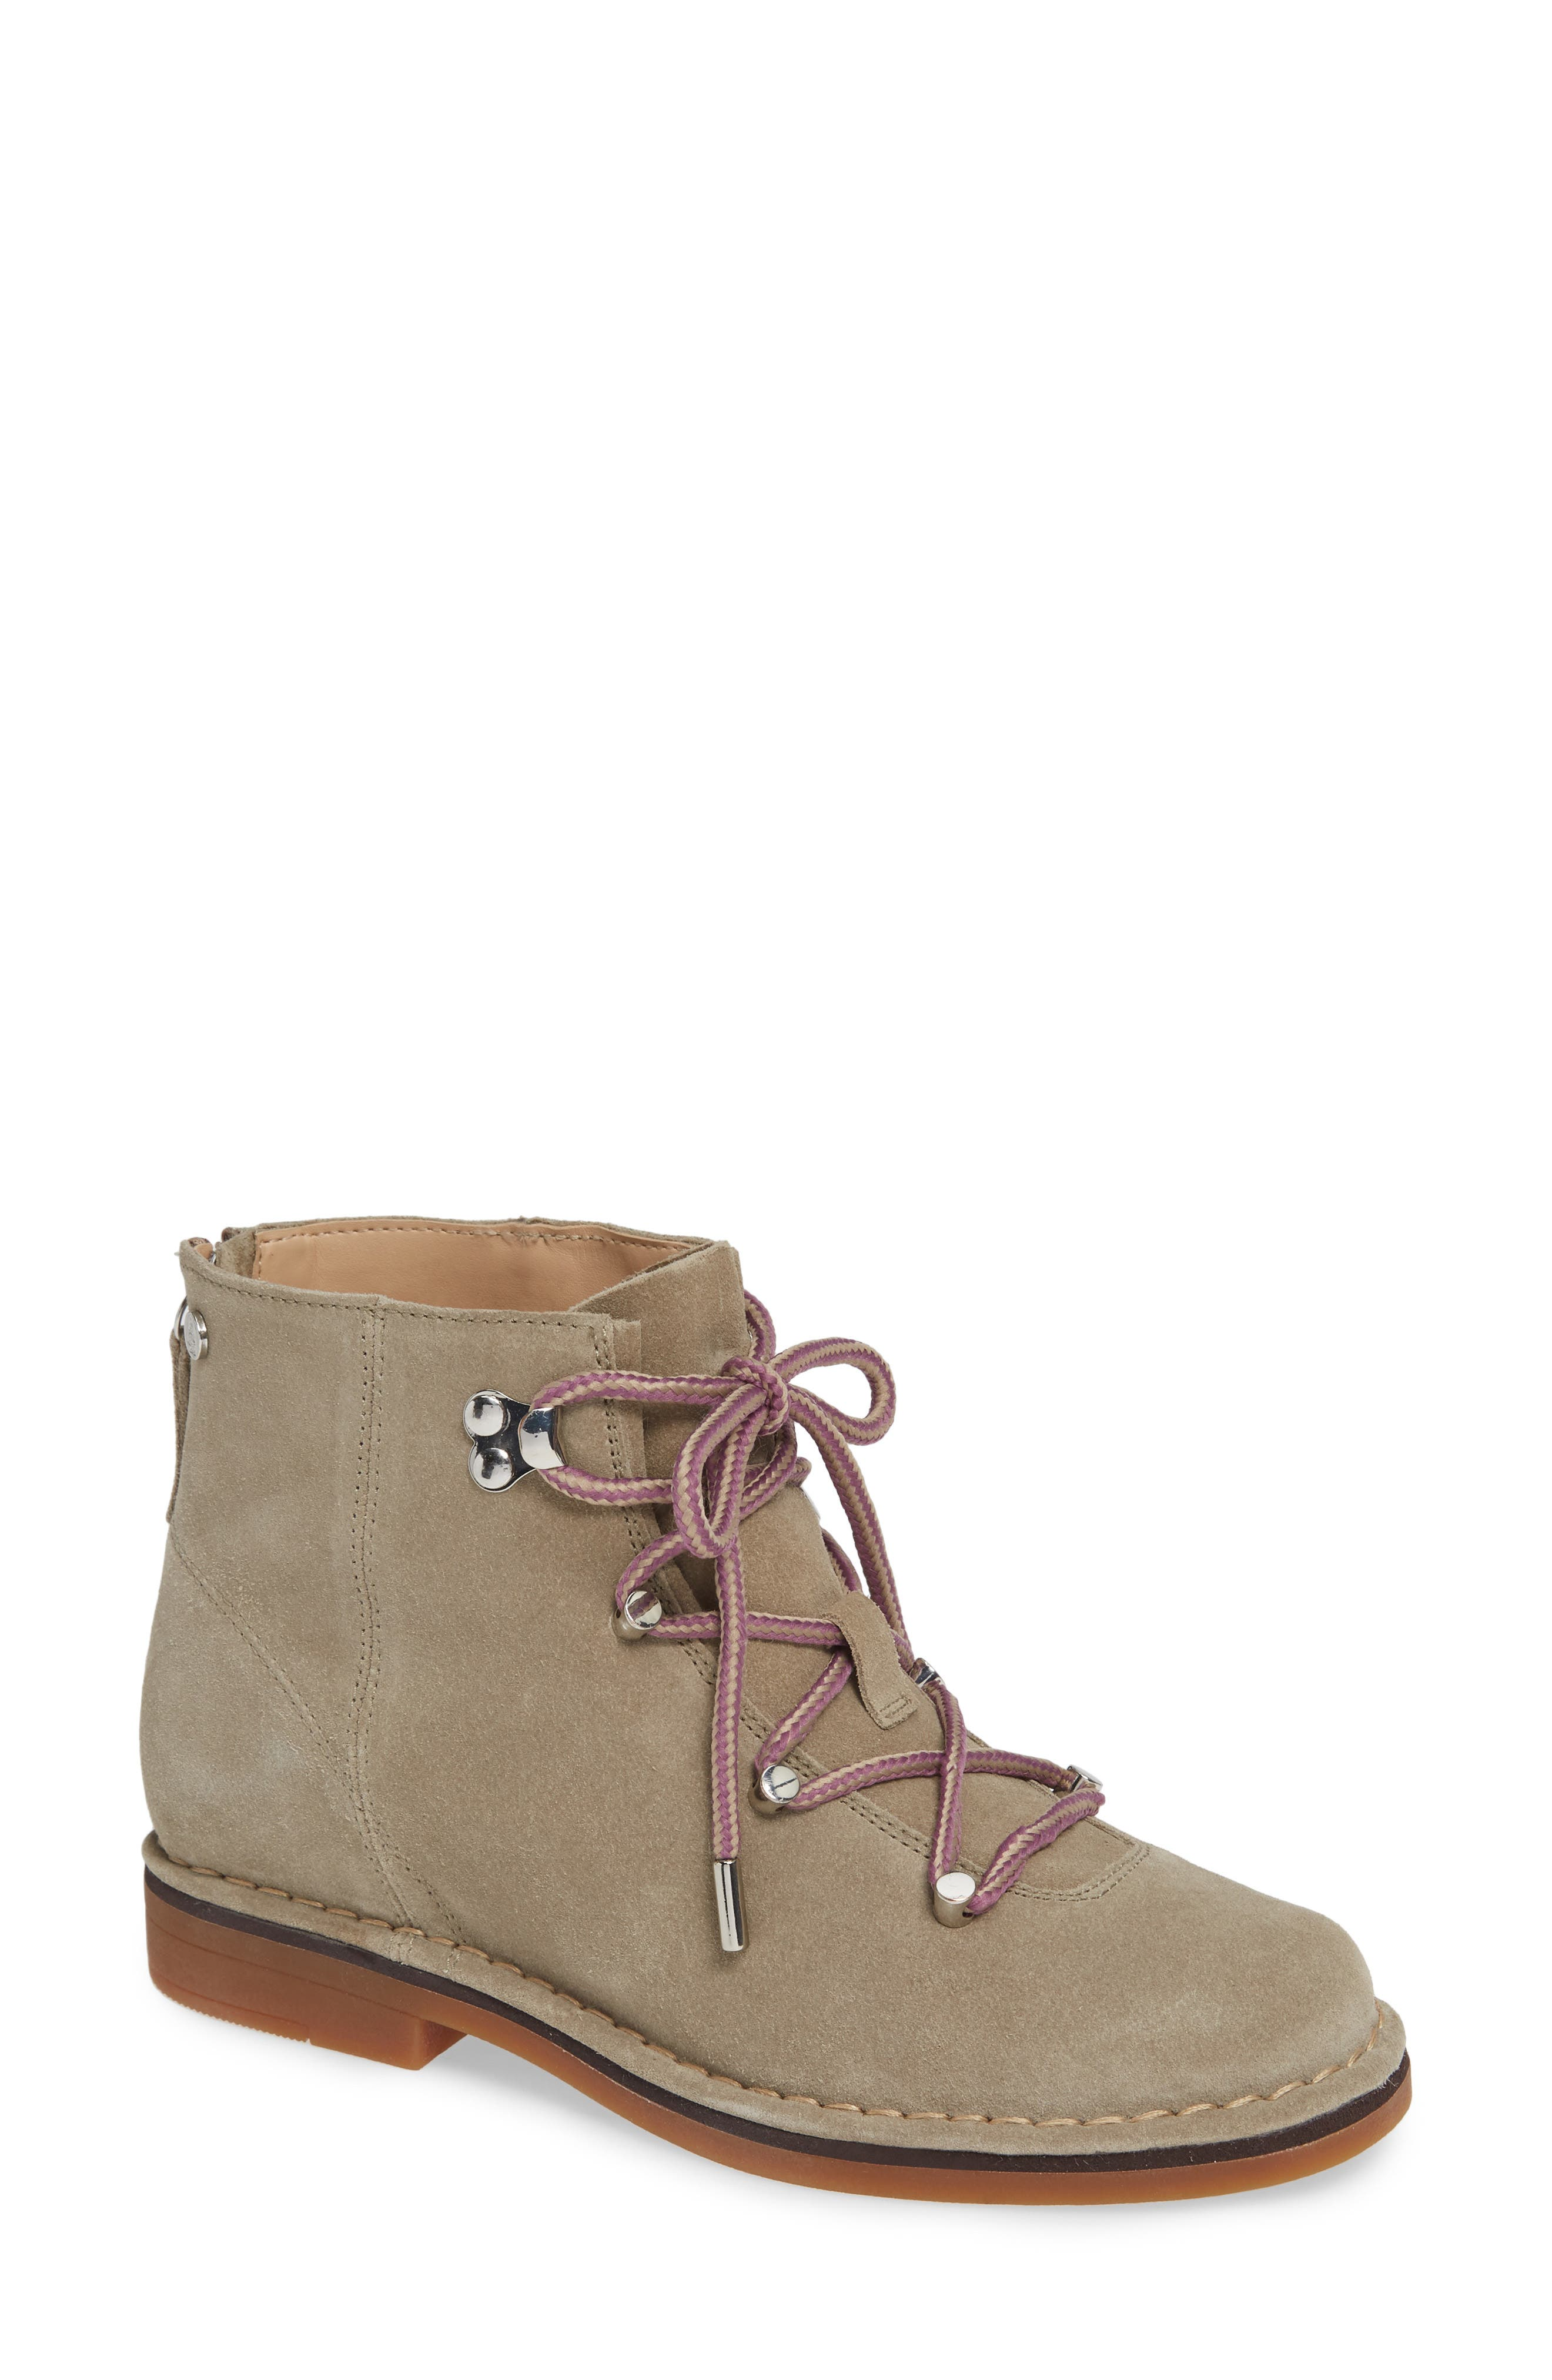 Hush Puppies Catelyn Hiker Bootie- Beige